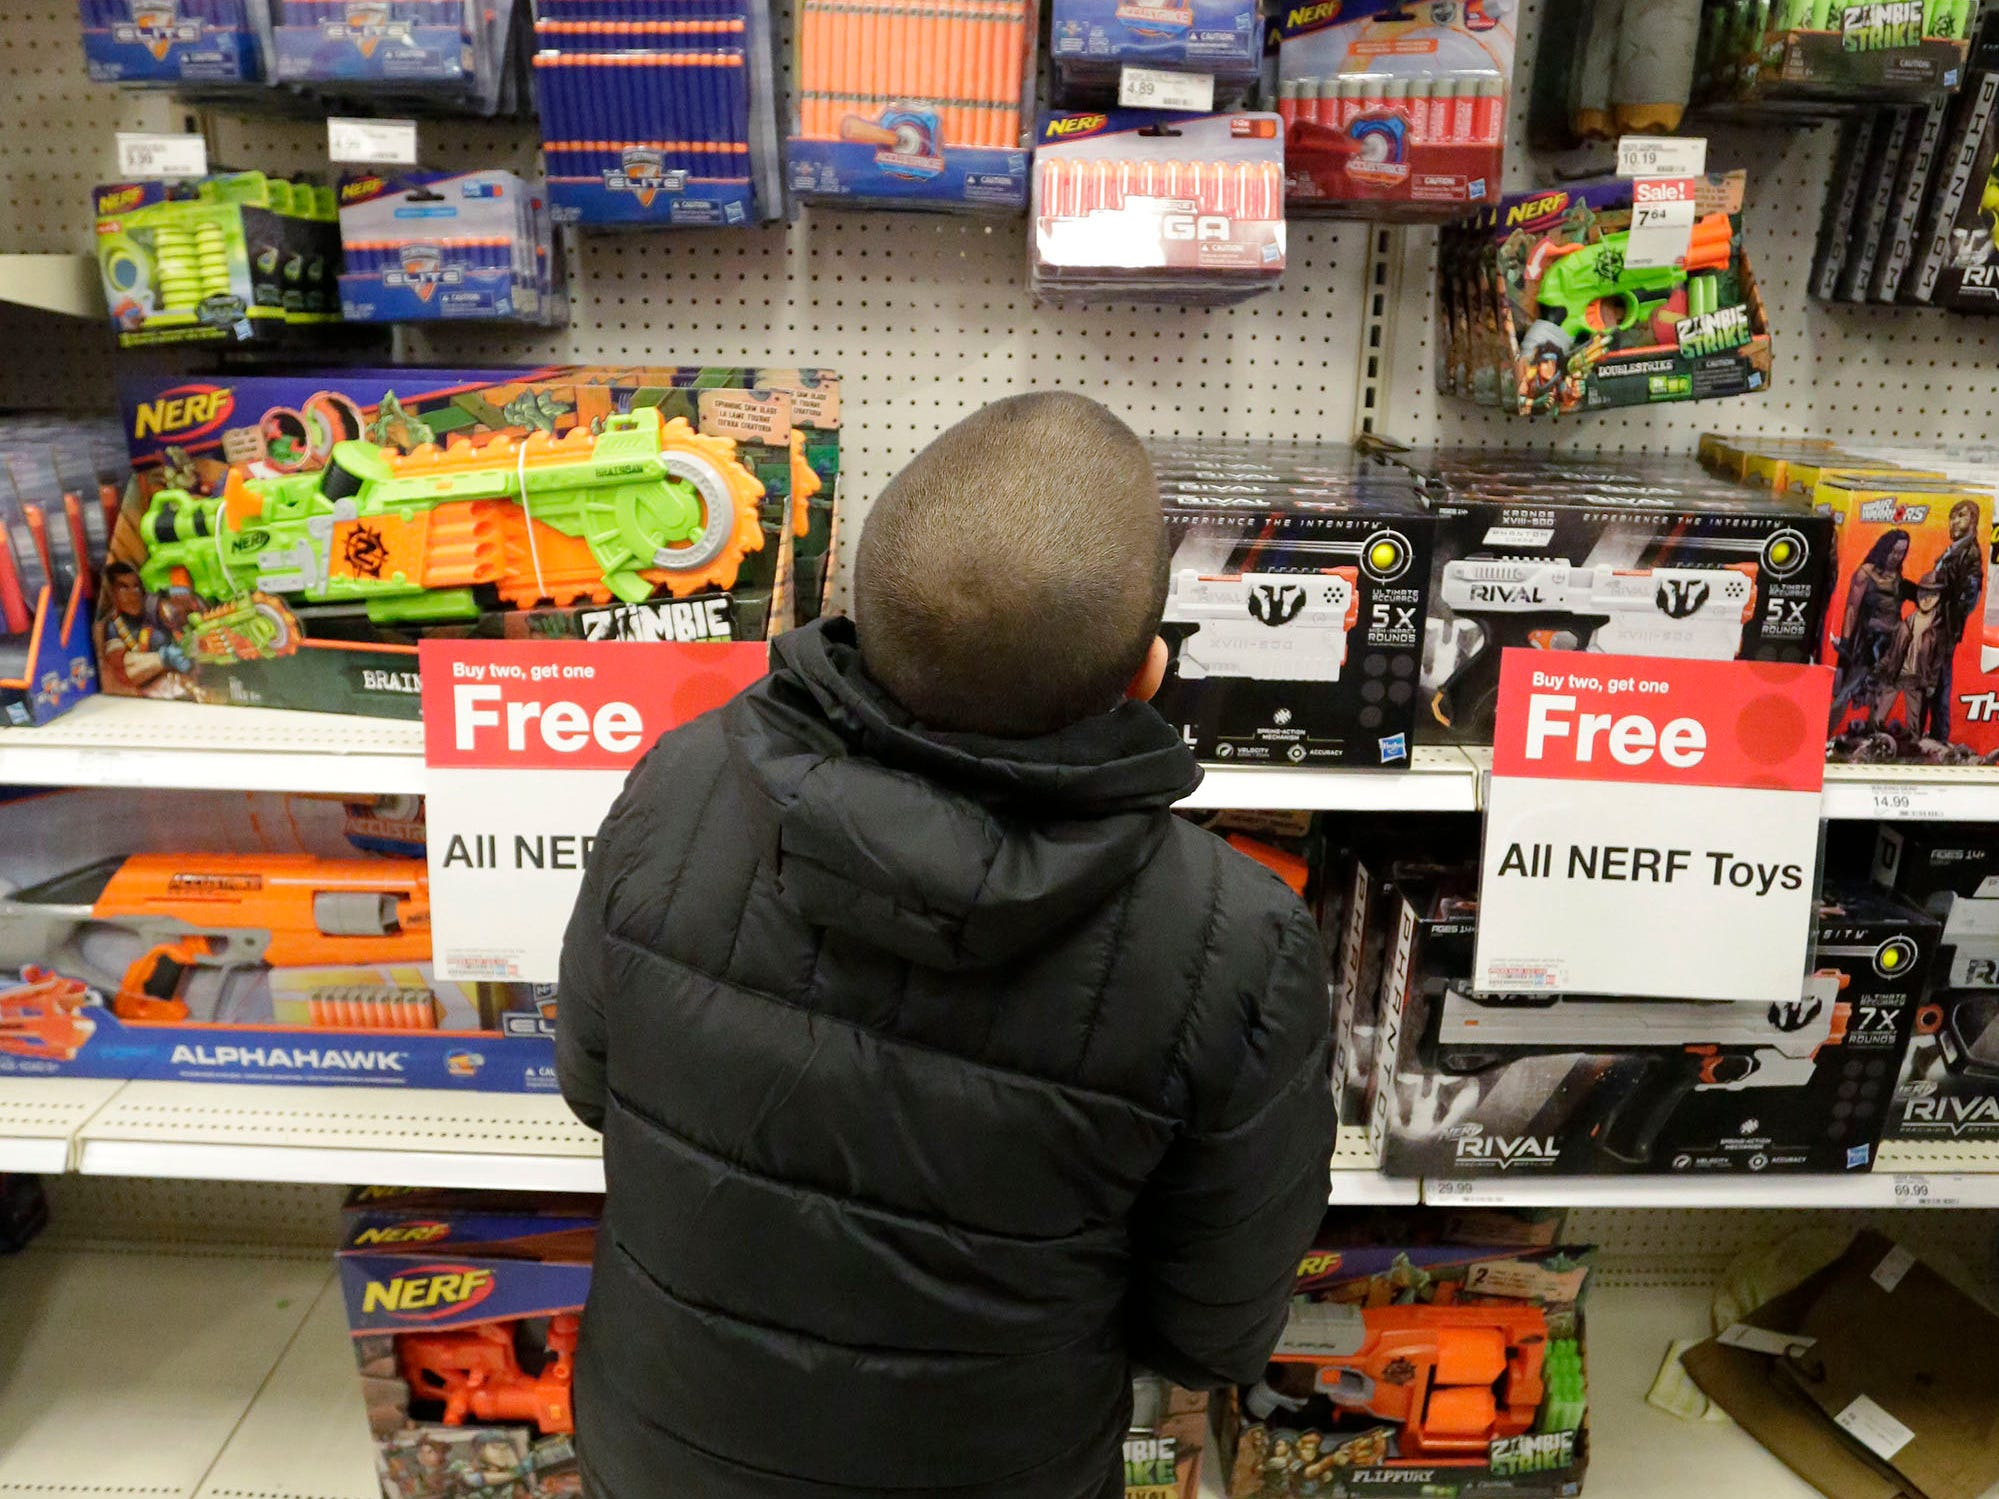 Jose Esteves, 8, of Sheboygan, Wis., examines his toy choices during Shop with a Copy, Tuesday, December 4, 2018, in Kohler, Wis. The program, in its 21st year, raises funds to give children a chance to buy holiday gifts that they otherwise might not receive.